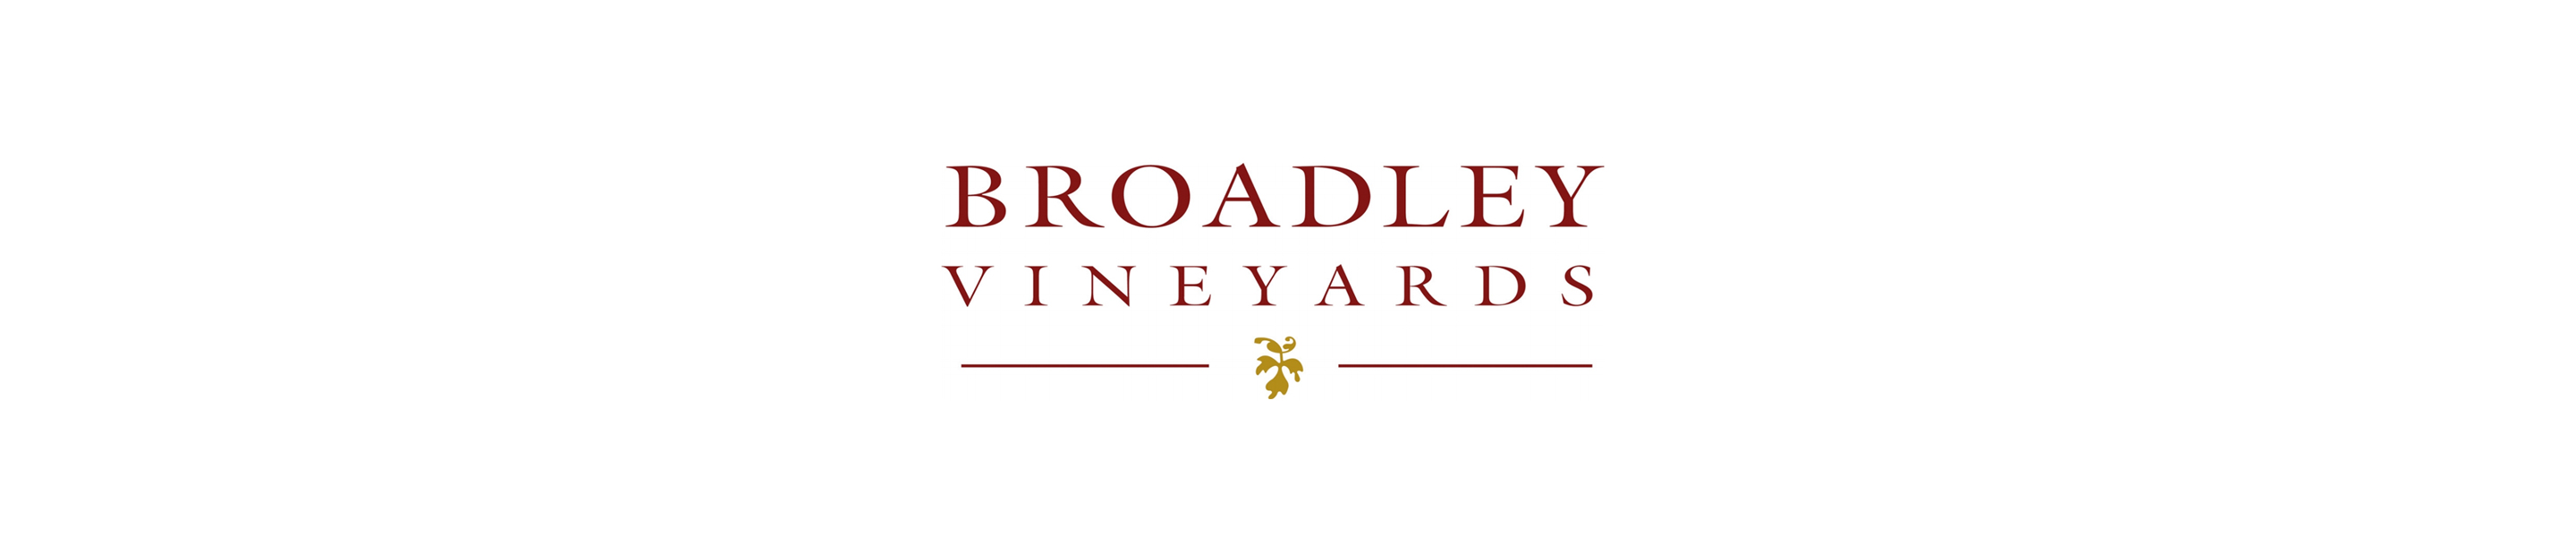 Broadley Vineyards is a family owned and operated winery. Craig and Claudia founded the business in 1981 and began planting the estate vineyard when Morgan was 11 years old.  Morgan and his wife Jessica are now the second generation in Broadley Vineyards, their two daughters; Olivia and Savanna also contribute to the family business.